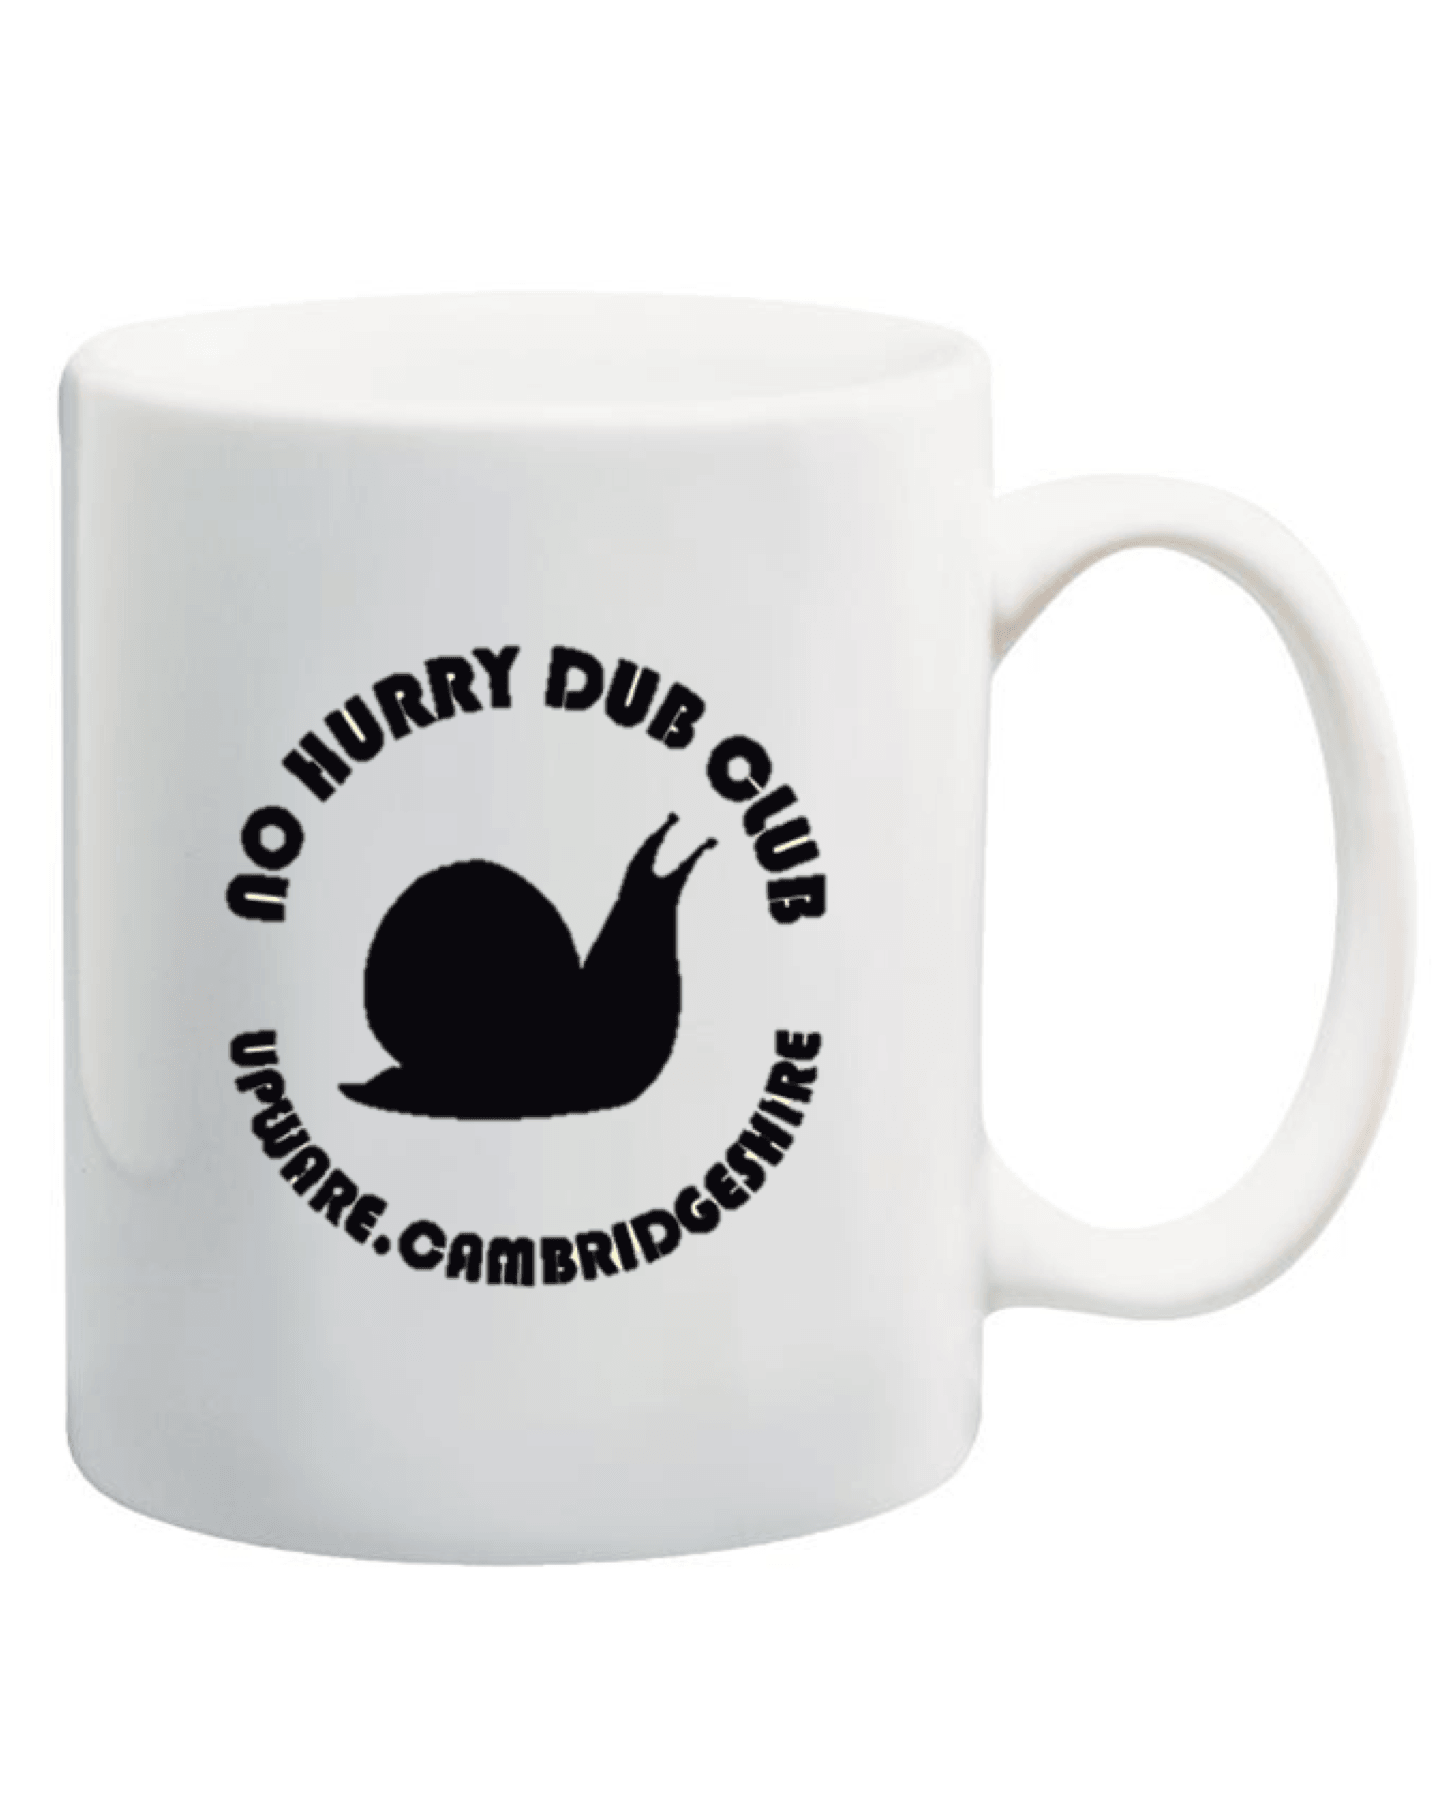 No Hurry Dub Club Mug